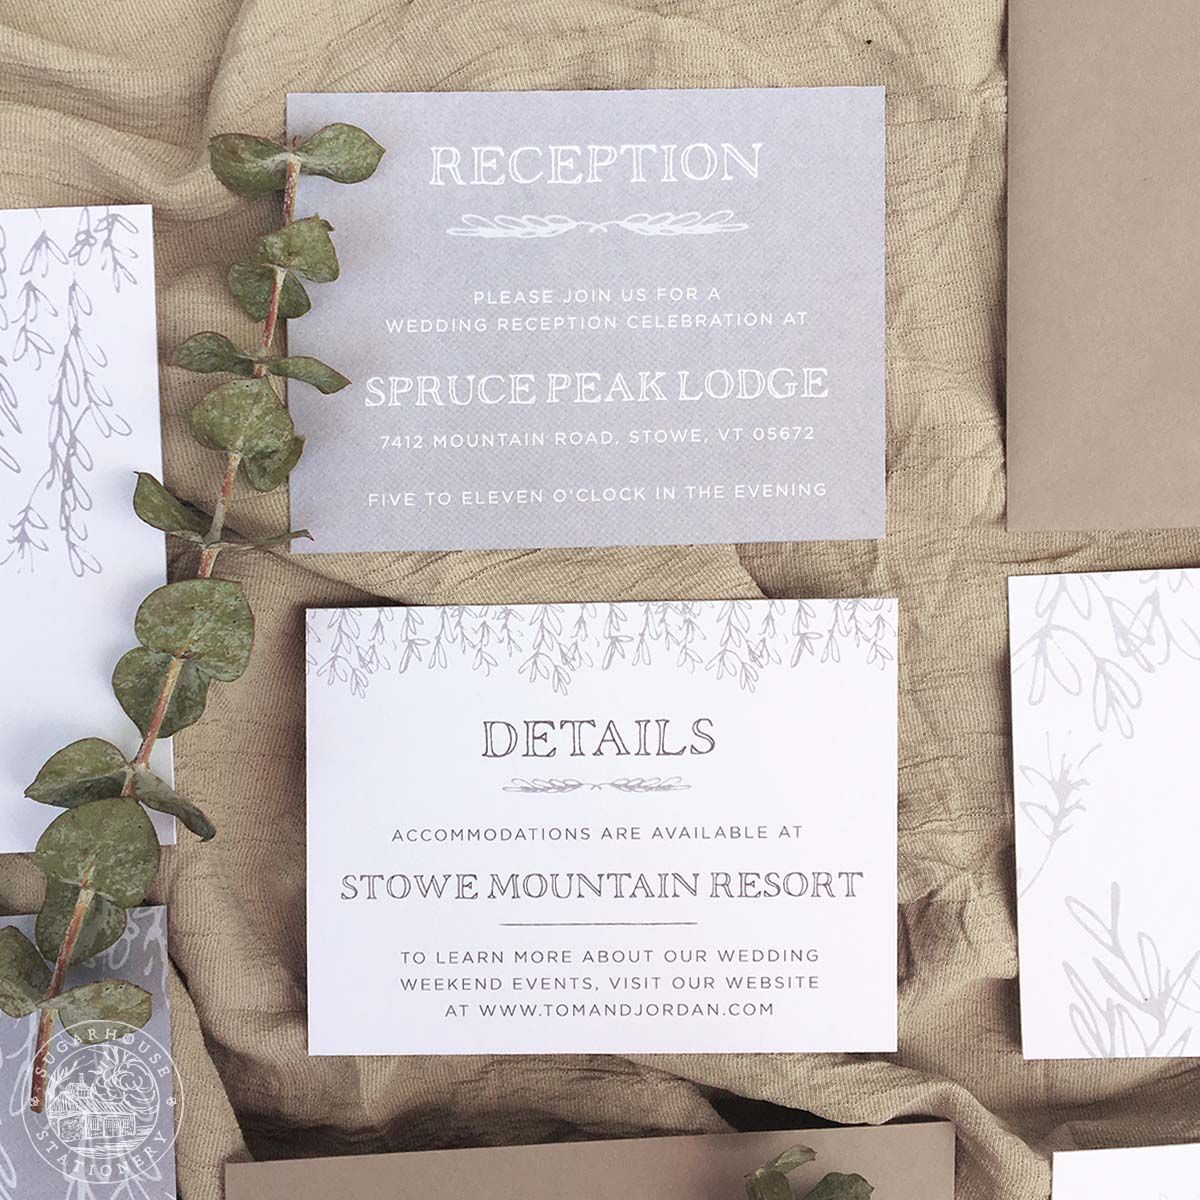 Mansfield grade a invitation suite stationery designs inspired wedding invitation design company specializing in invitation suites save the dates day of pieces and custom stationery design services stopboris Gallery